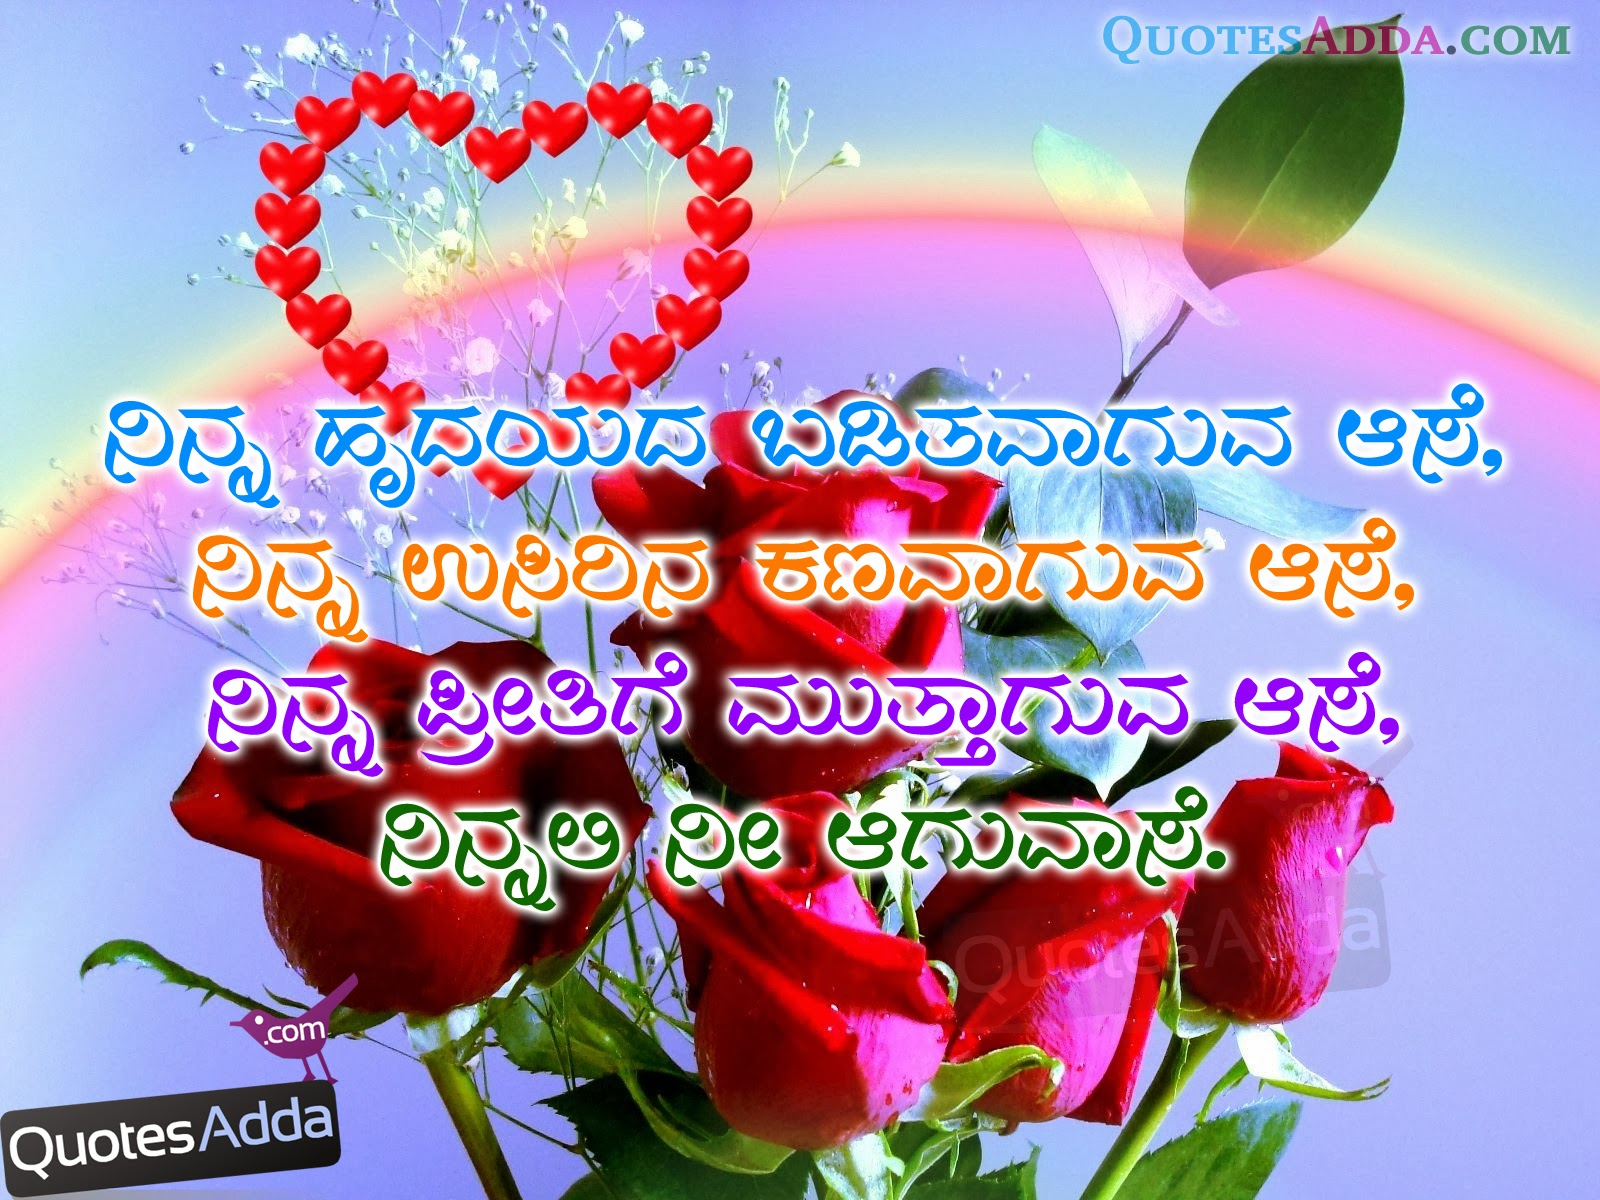 Kannada Love Quotes 2 Kannada Love Images QuotesAdda.com Telugu Quotes Tamil Quotes ...